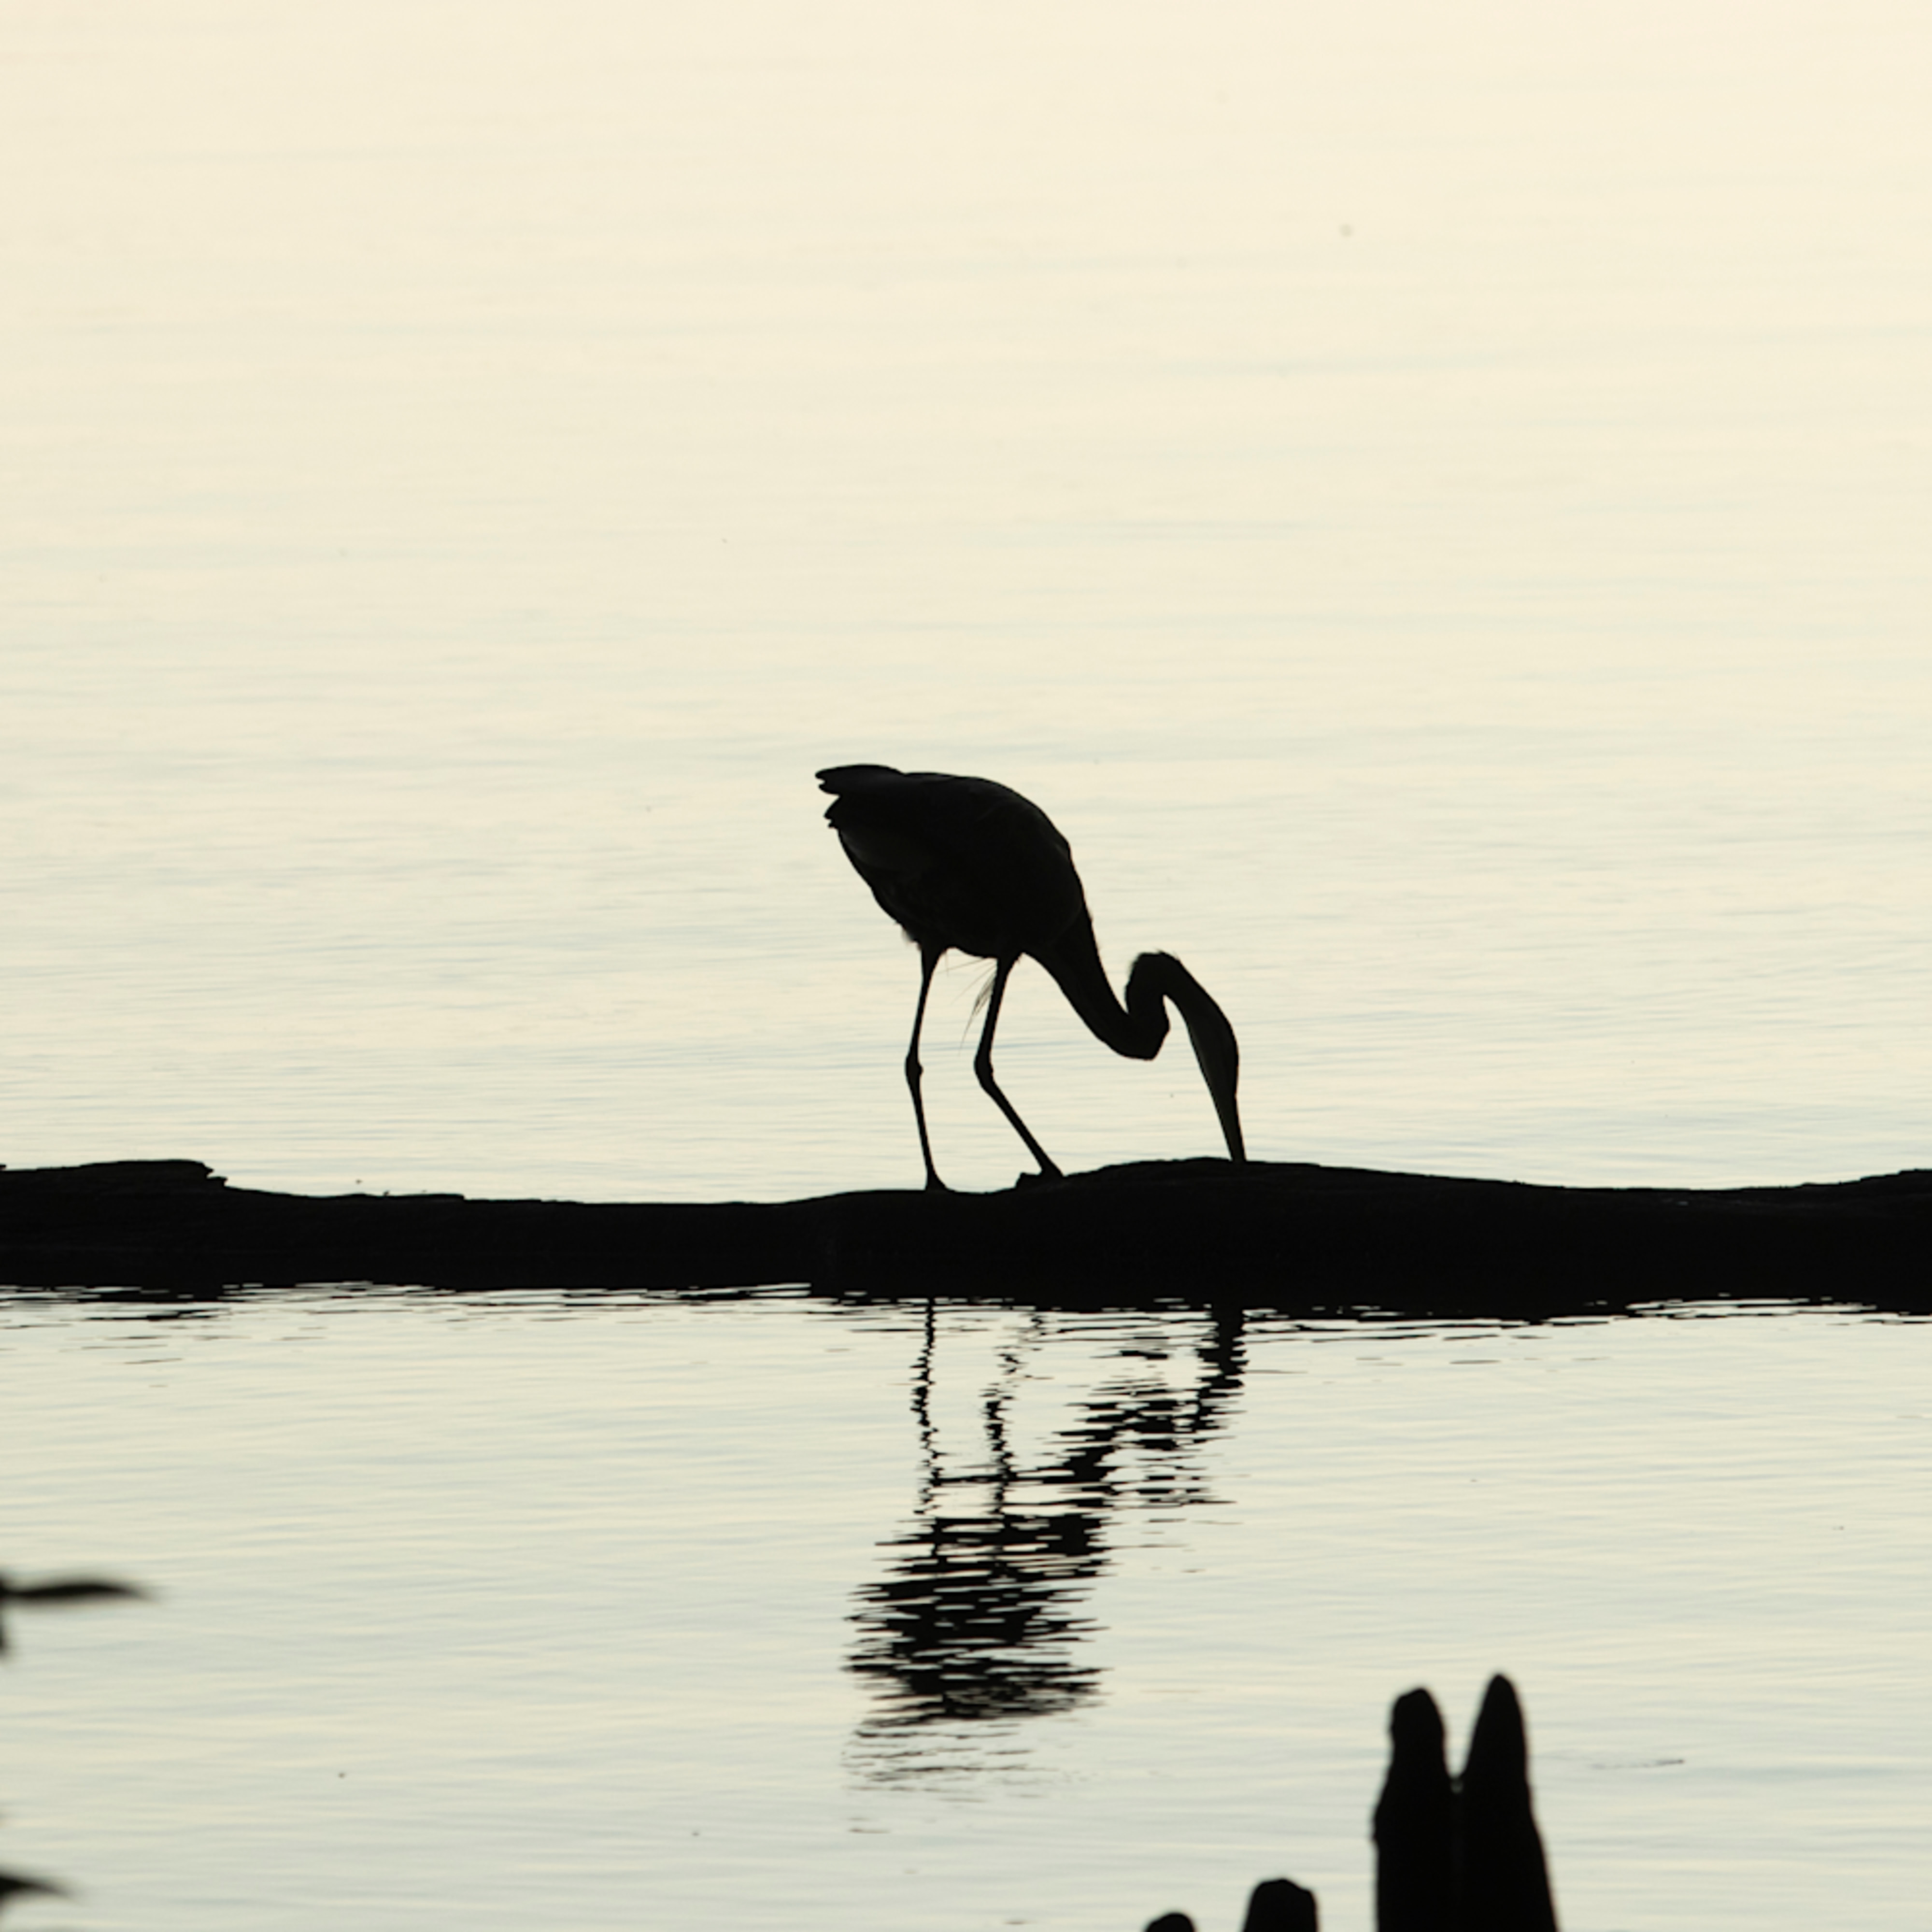 Heron silhouettes mg 7522 srm20 ud0zh8